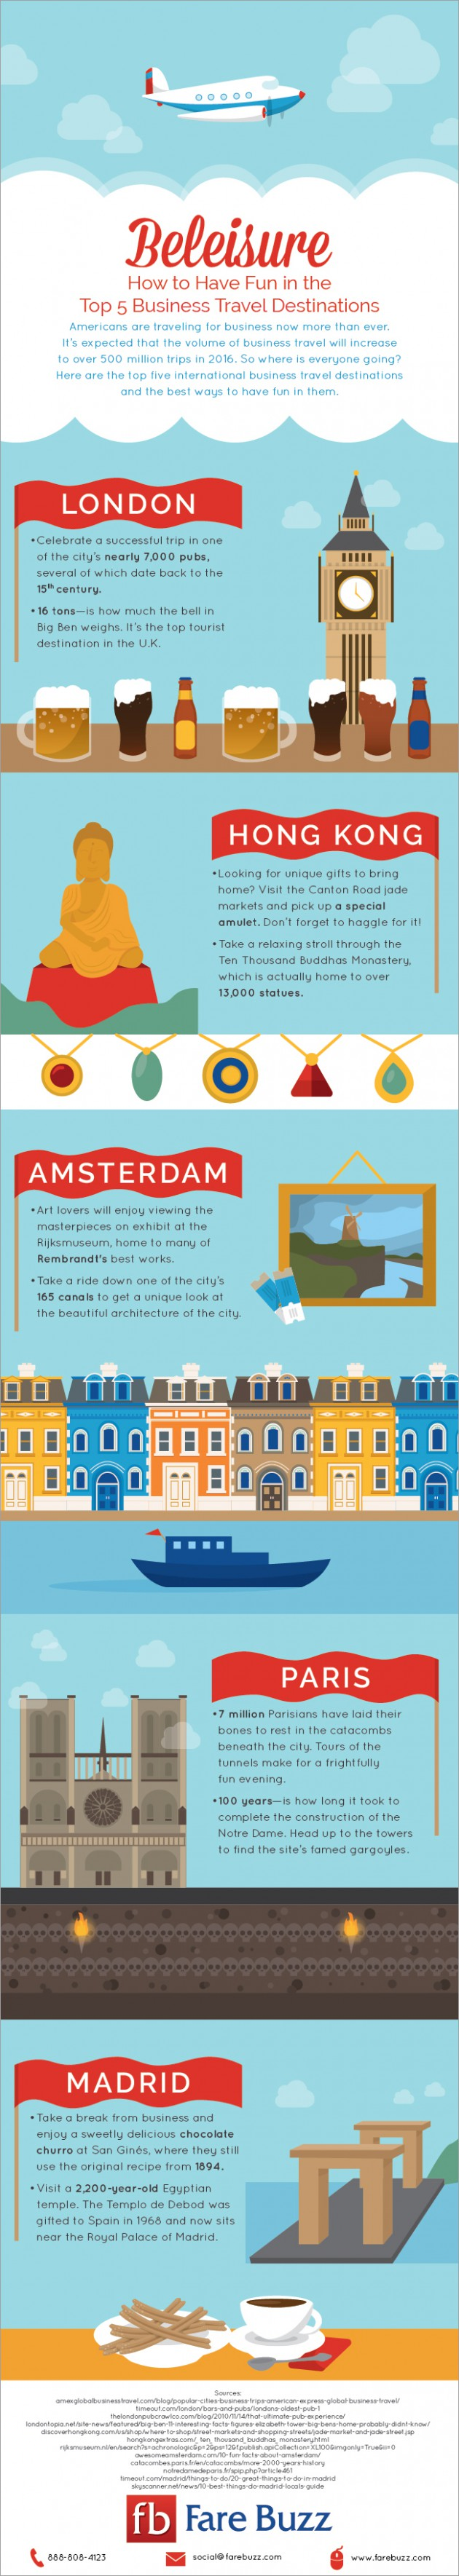 Fare Buzz Beleisure Infographics - How to Have Fun in the Top 5 Business Travel Destinations